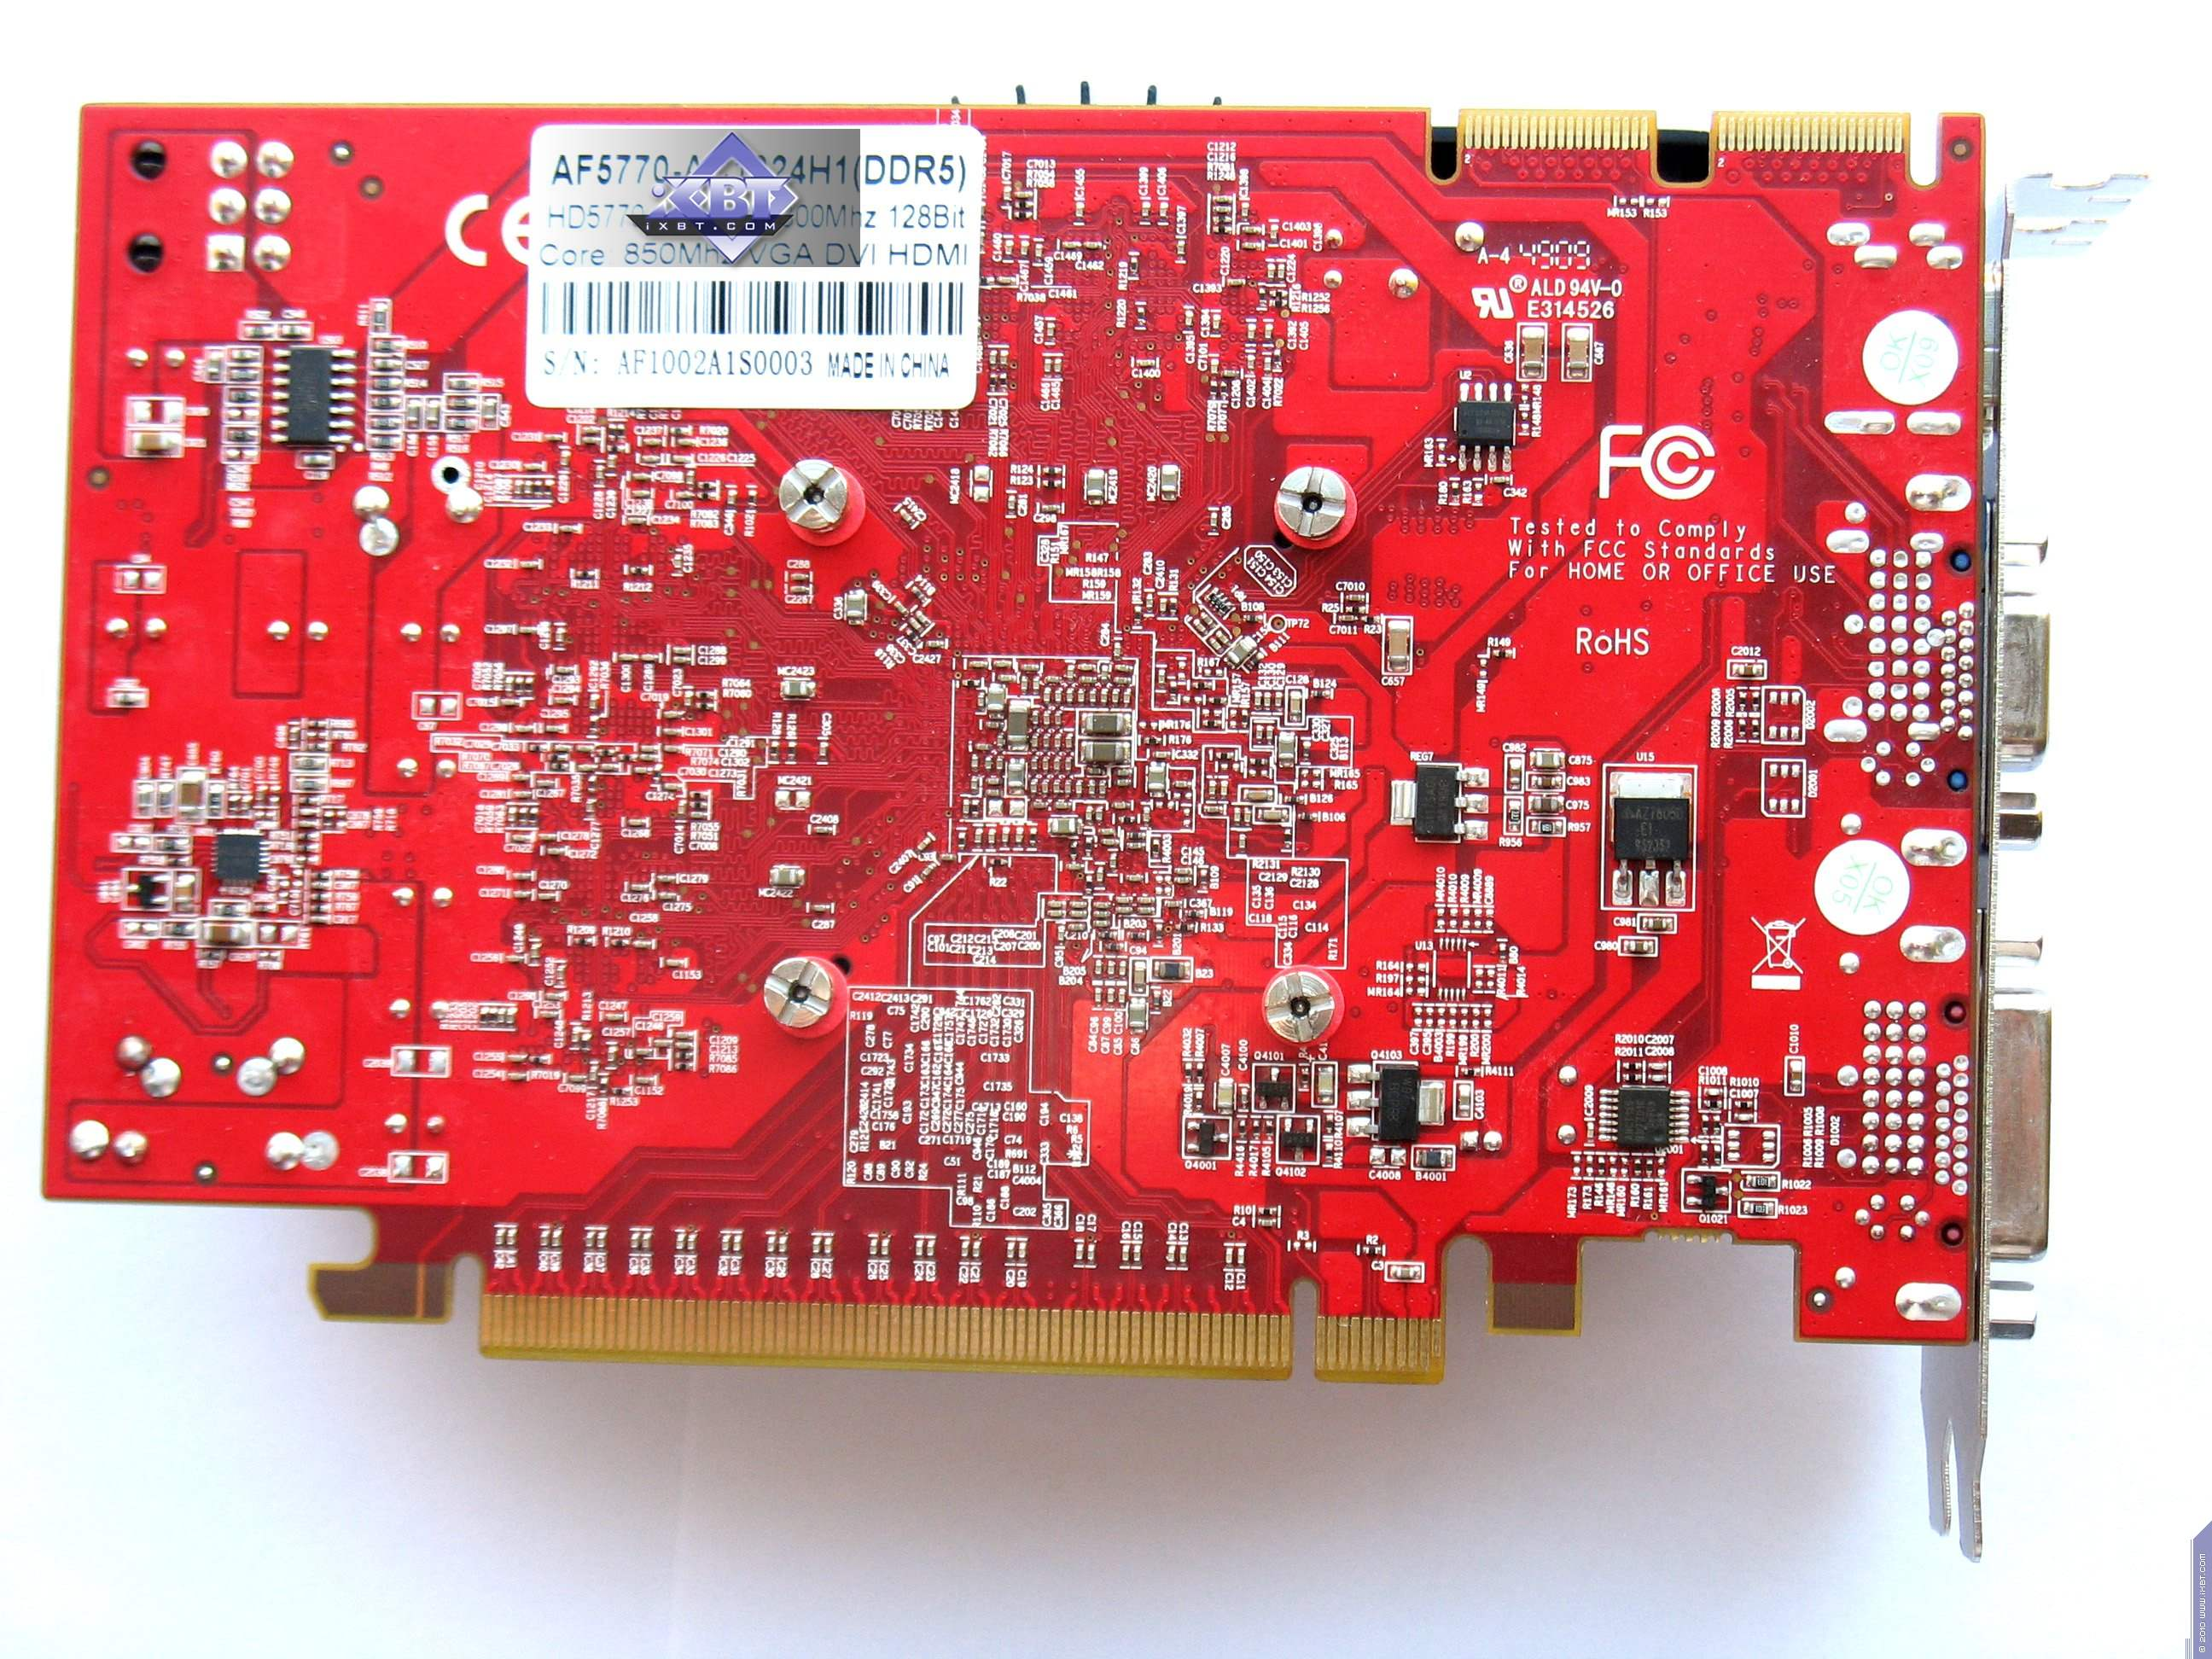 iXBT Labs - ATI Radeon HD 5750/5770 Graphics Cards - Page 1